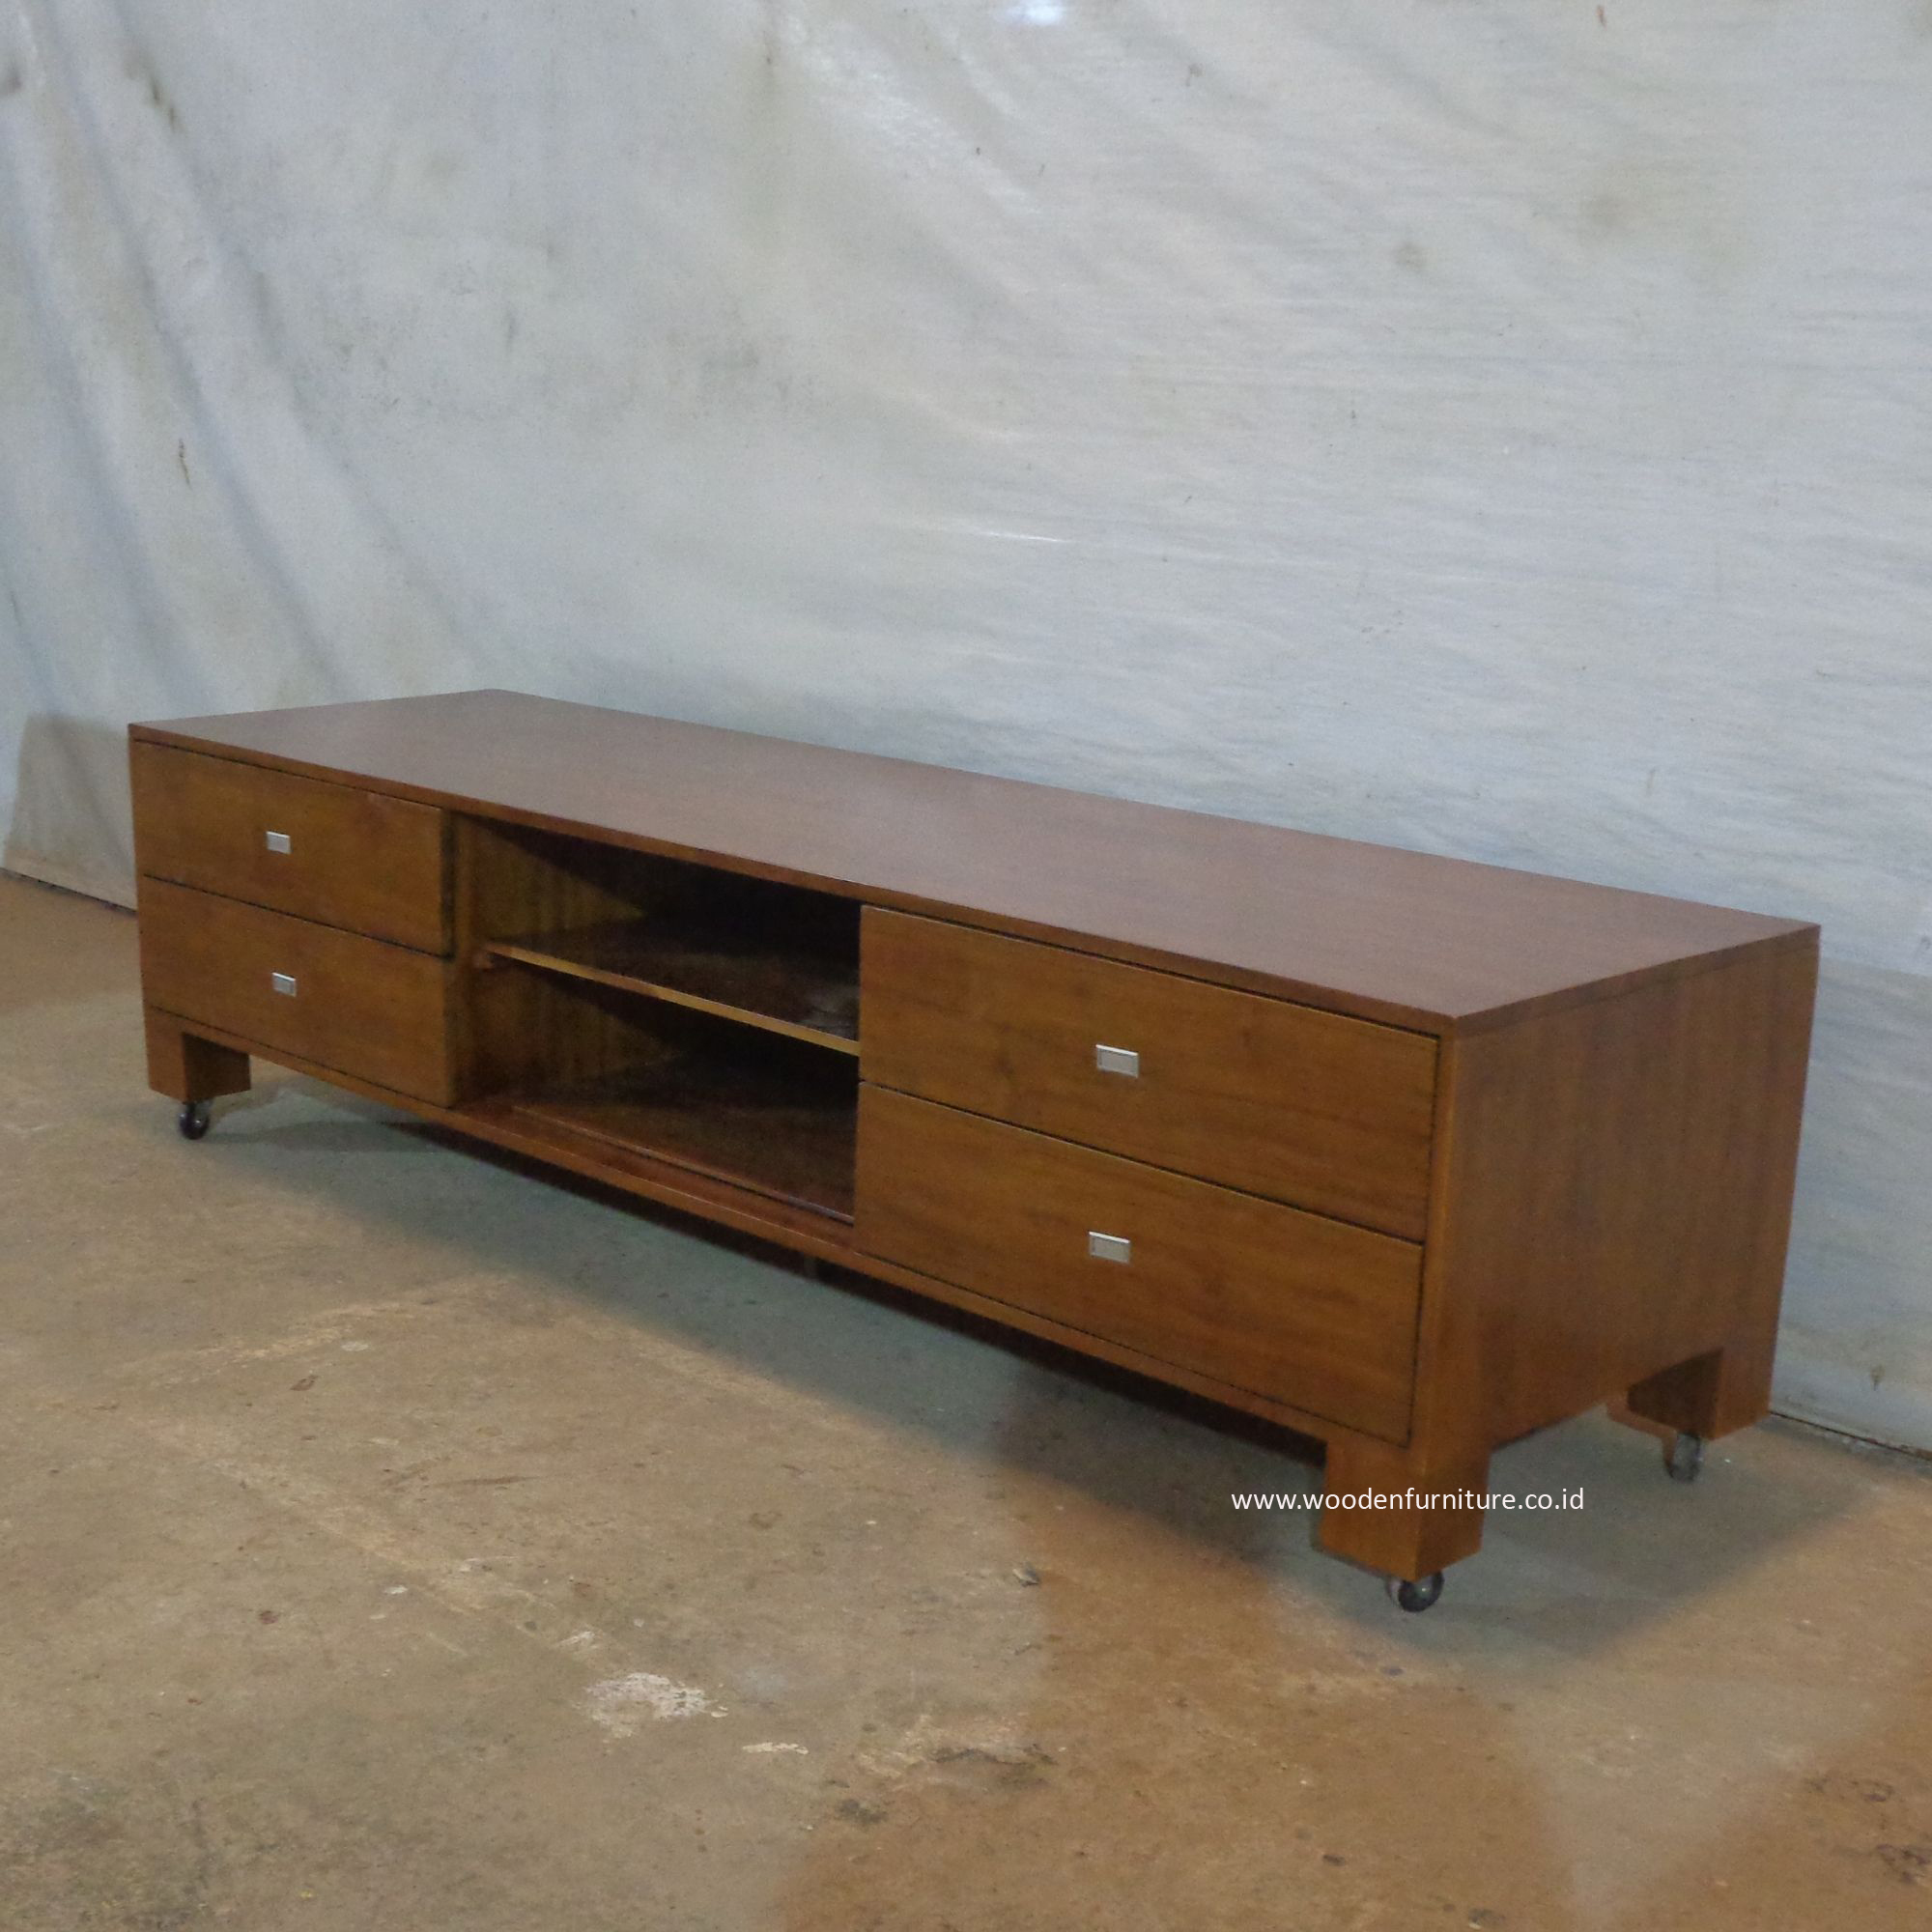 Teak Wood Tv Table Modern Tv Console Contemporary Tv Stand Minimalist Home Furniture Buy Led Tv Stand Furniture Teak Wood Furniture Tv Hall Cabinet Living Room Furniture Designs Product On Alibaba Com